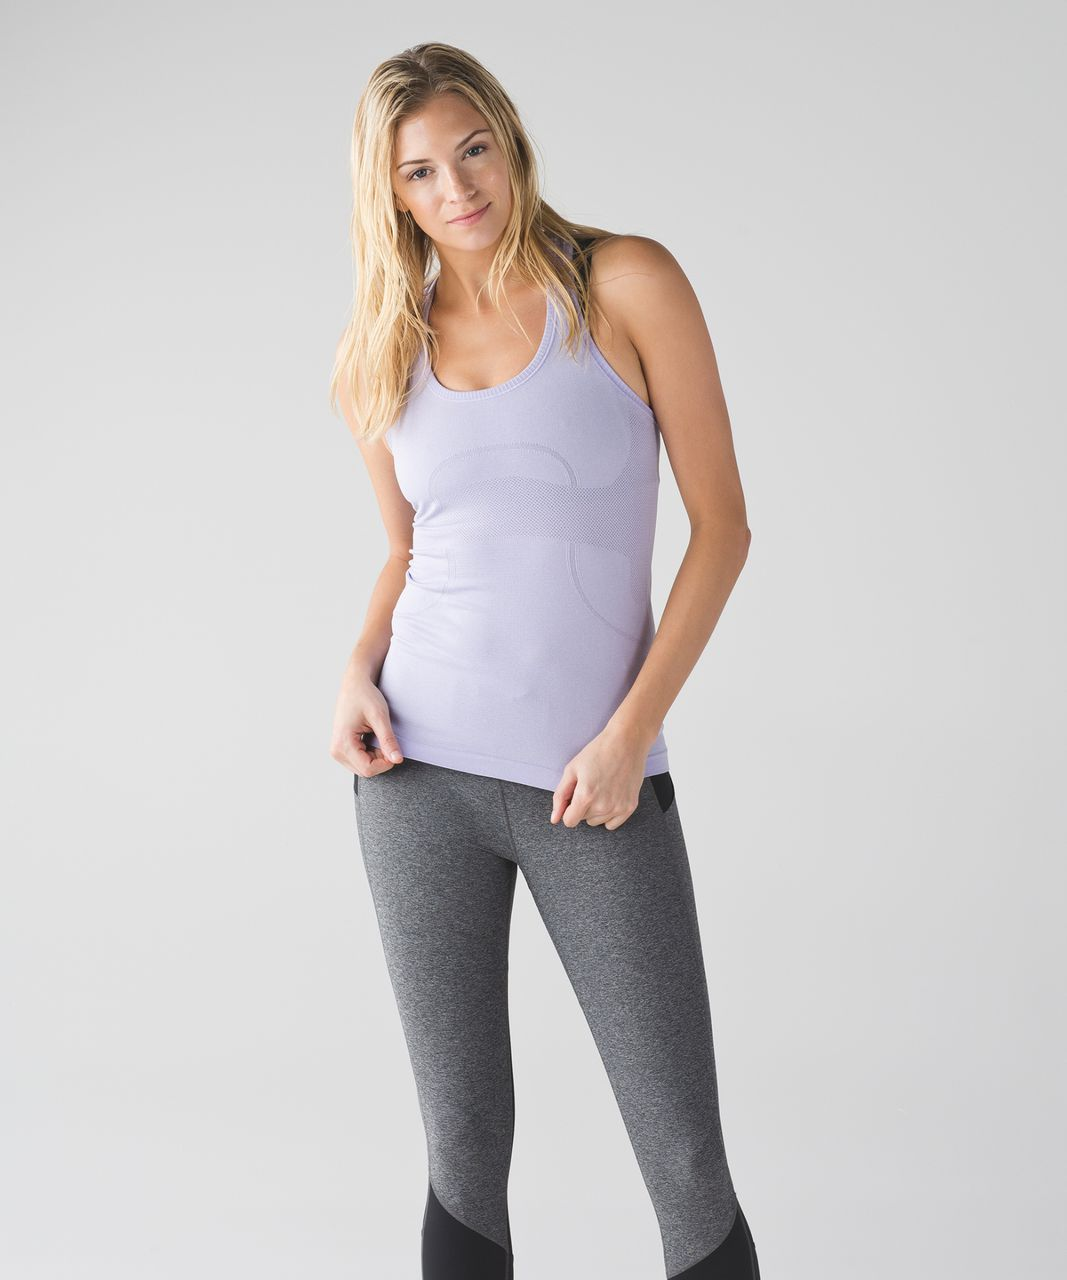 Lululemon Swiftly Tech Racerback - Heathered Lilac